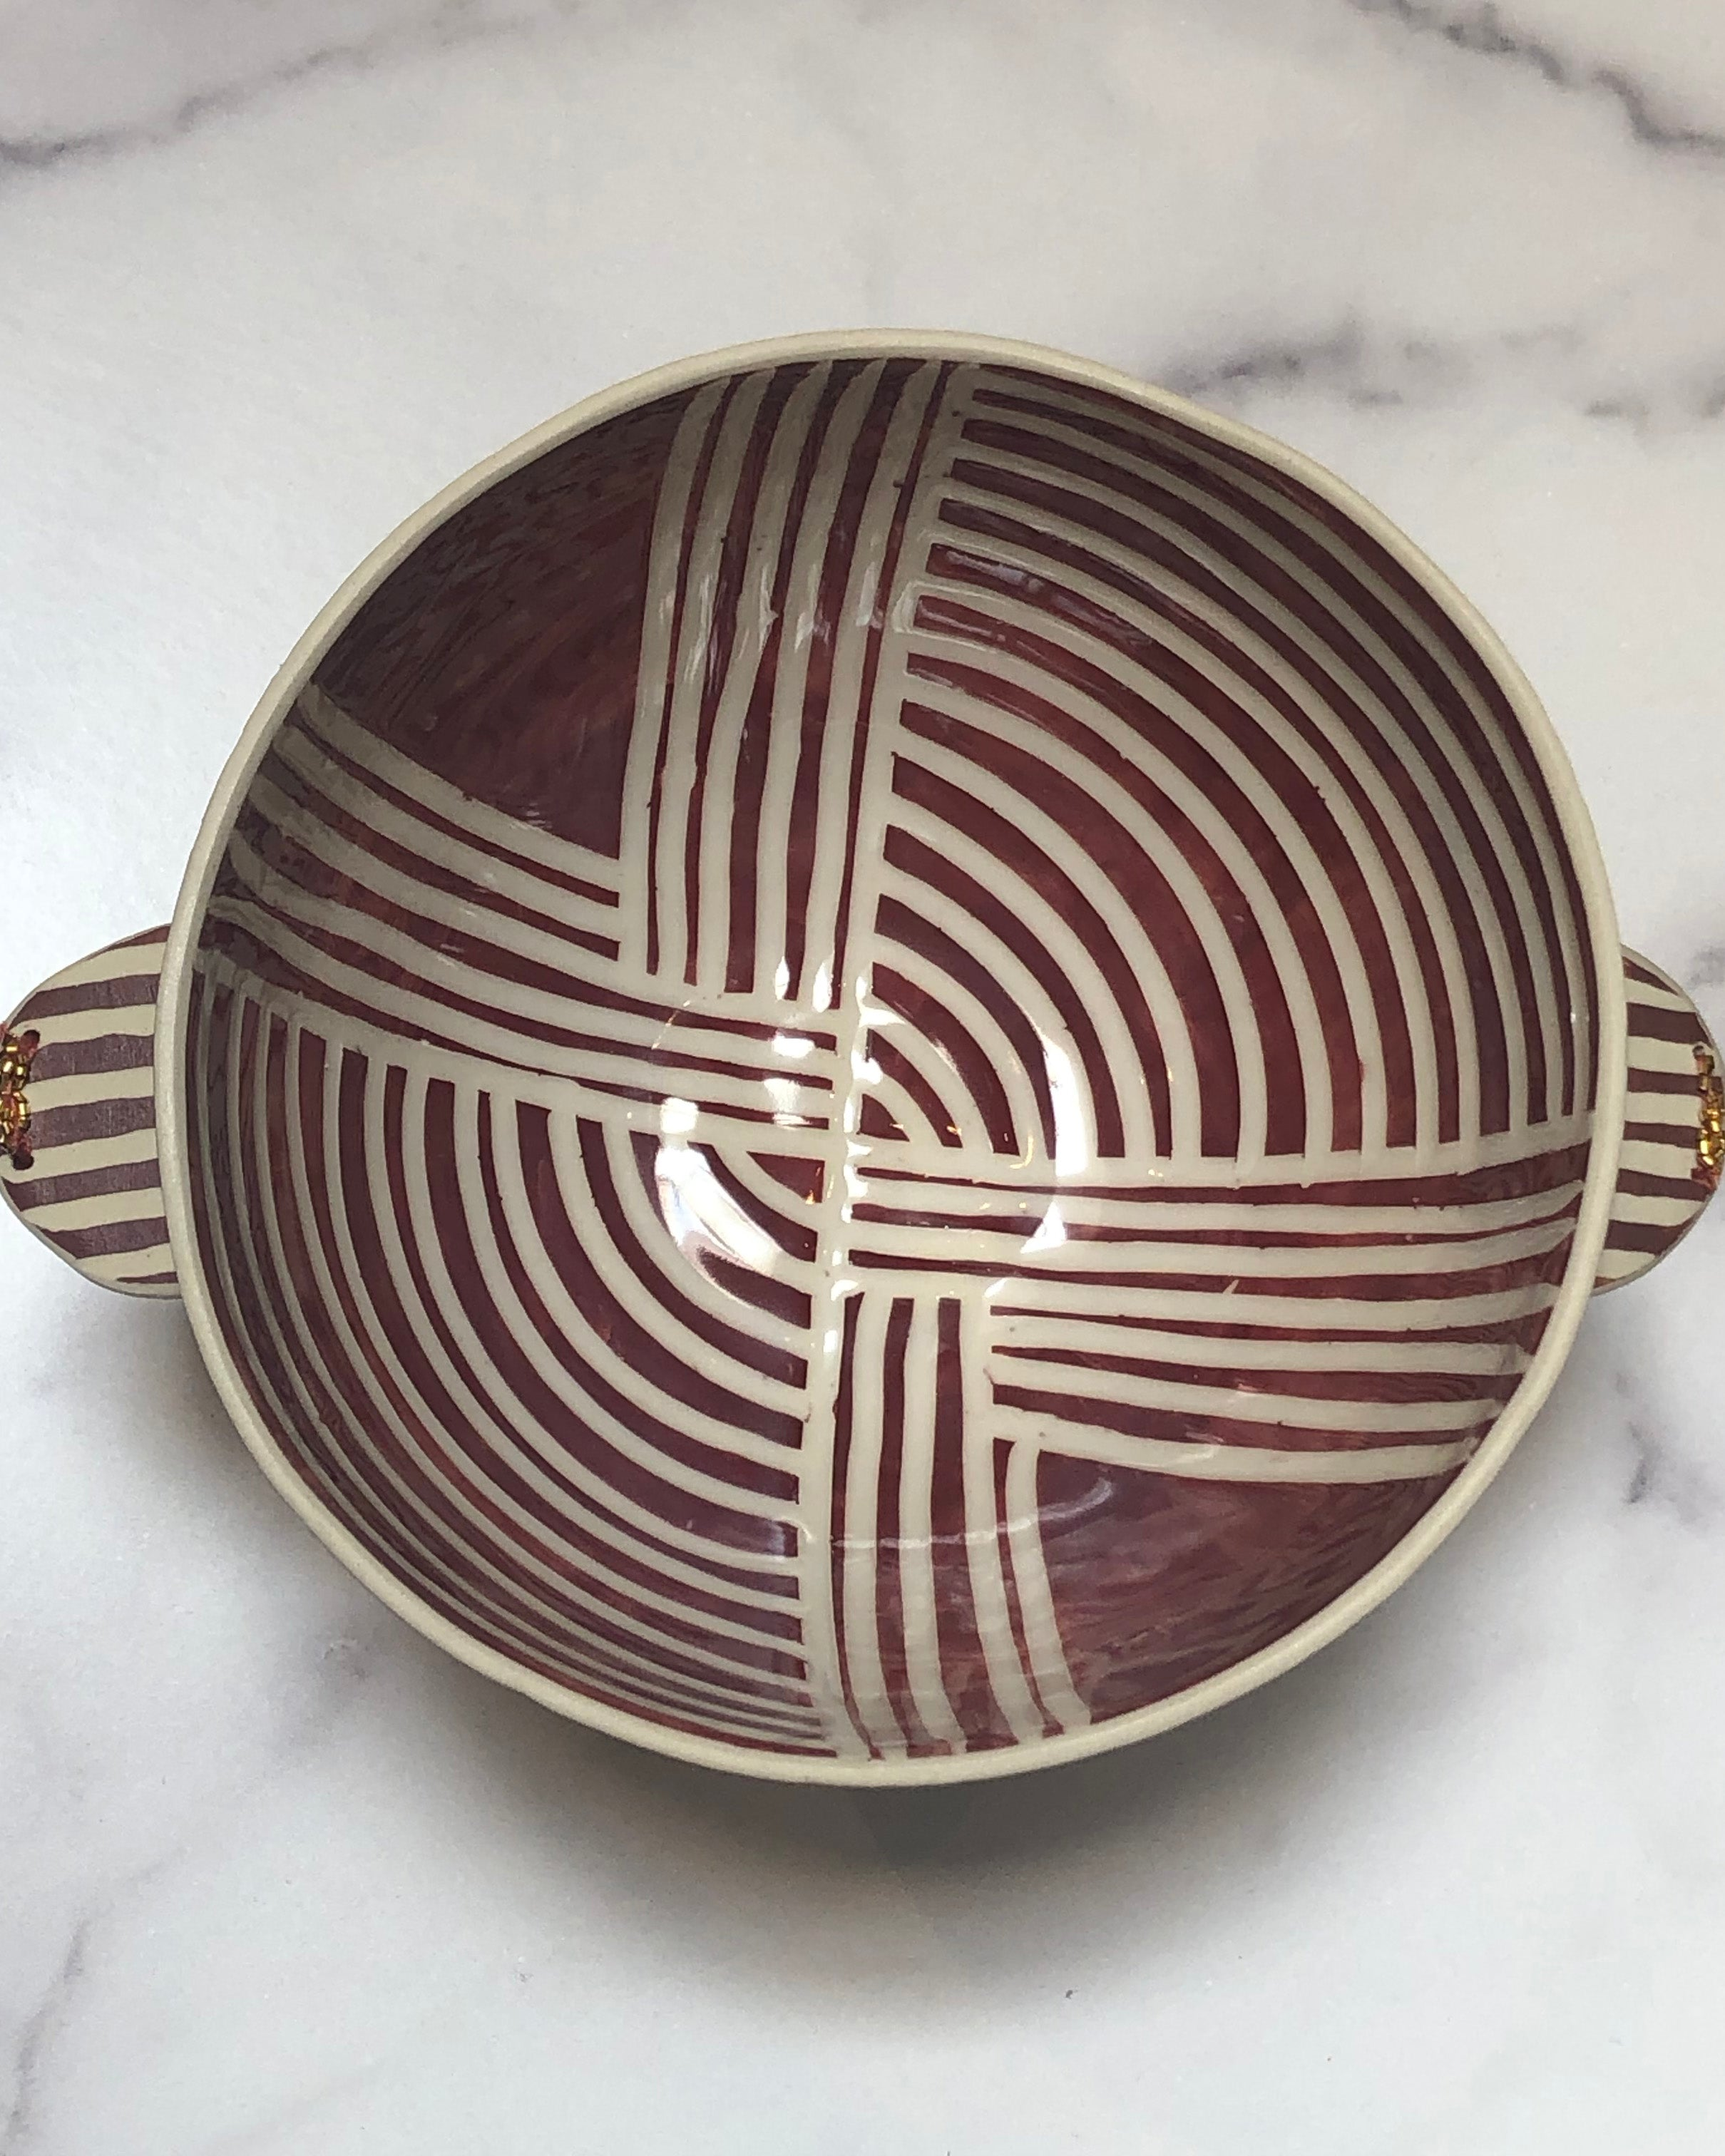 Handmade terracota fountain bowl with beads and fabric